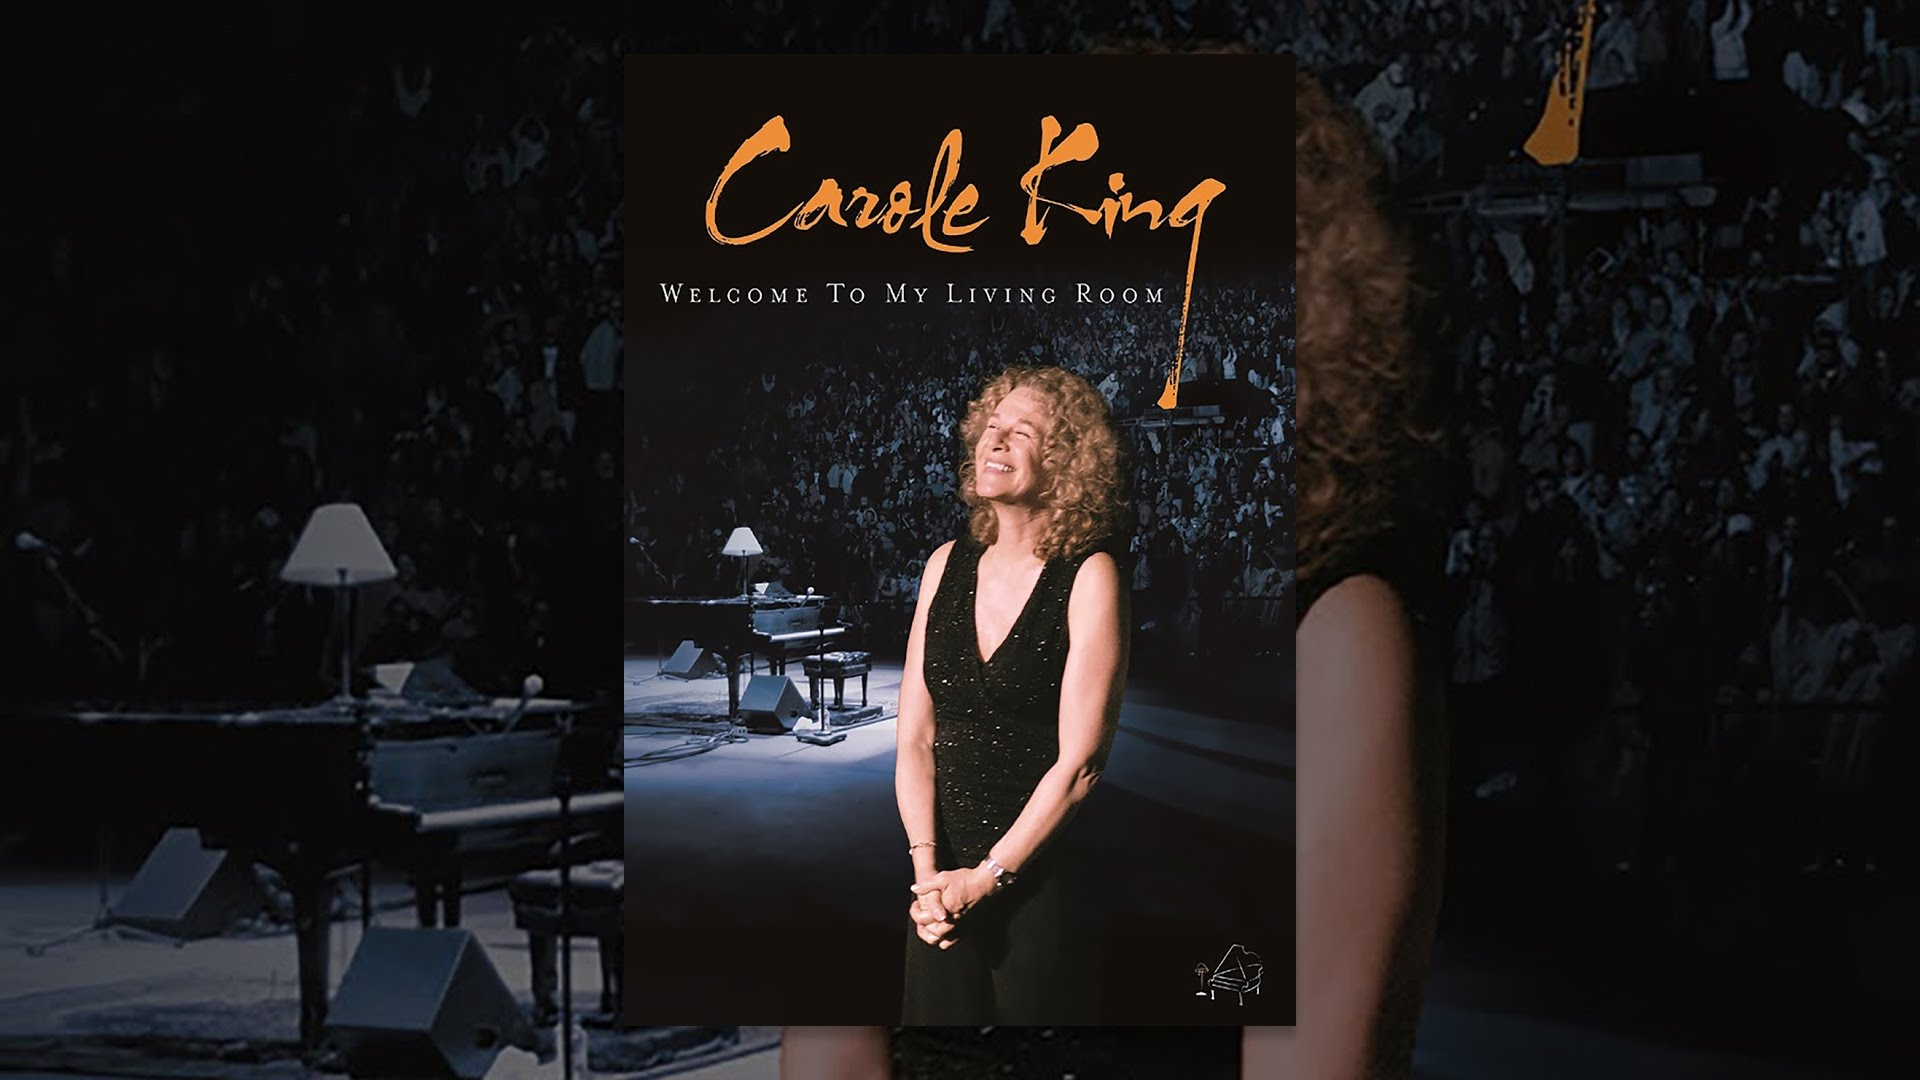 Carole king welcome to my living room youtube for Carole king living room tour